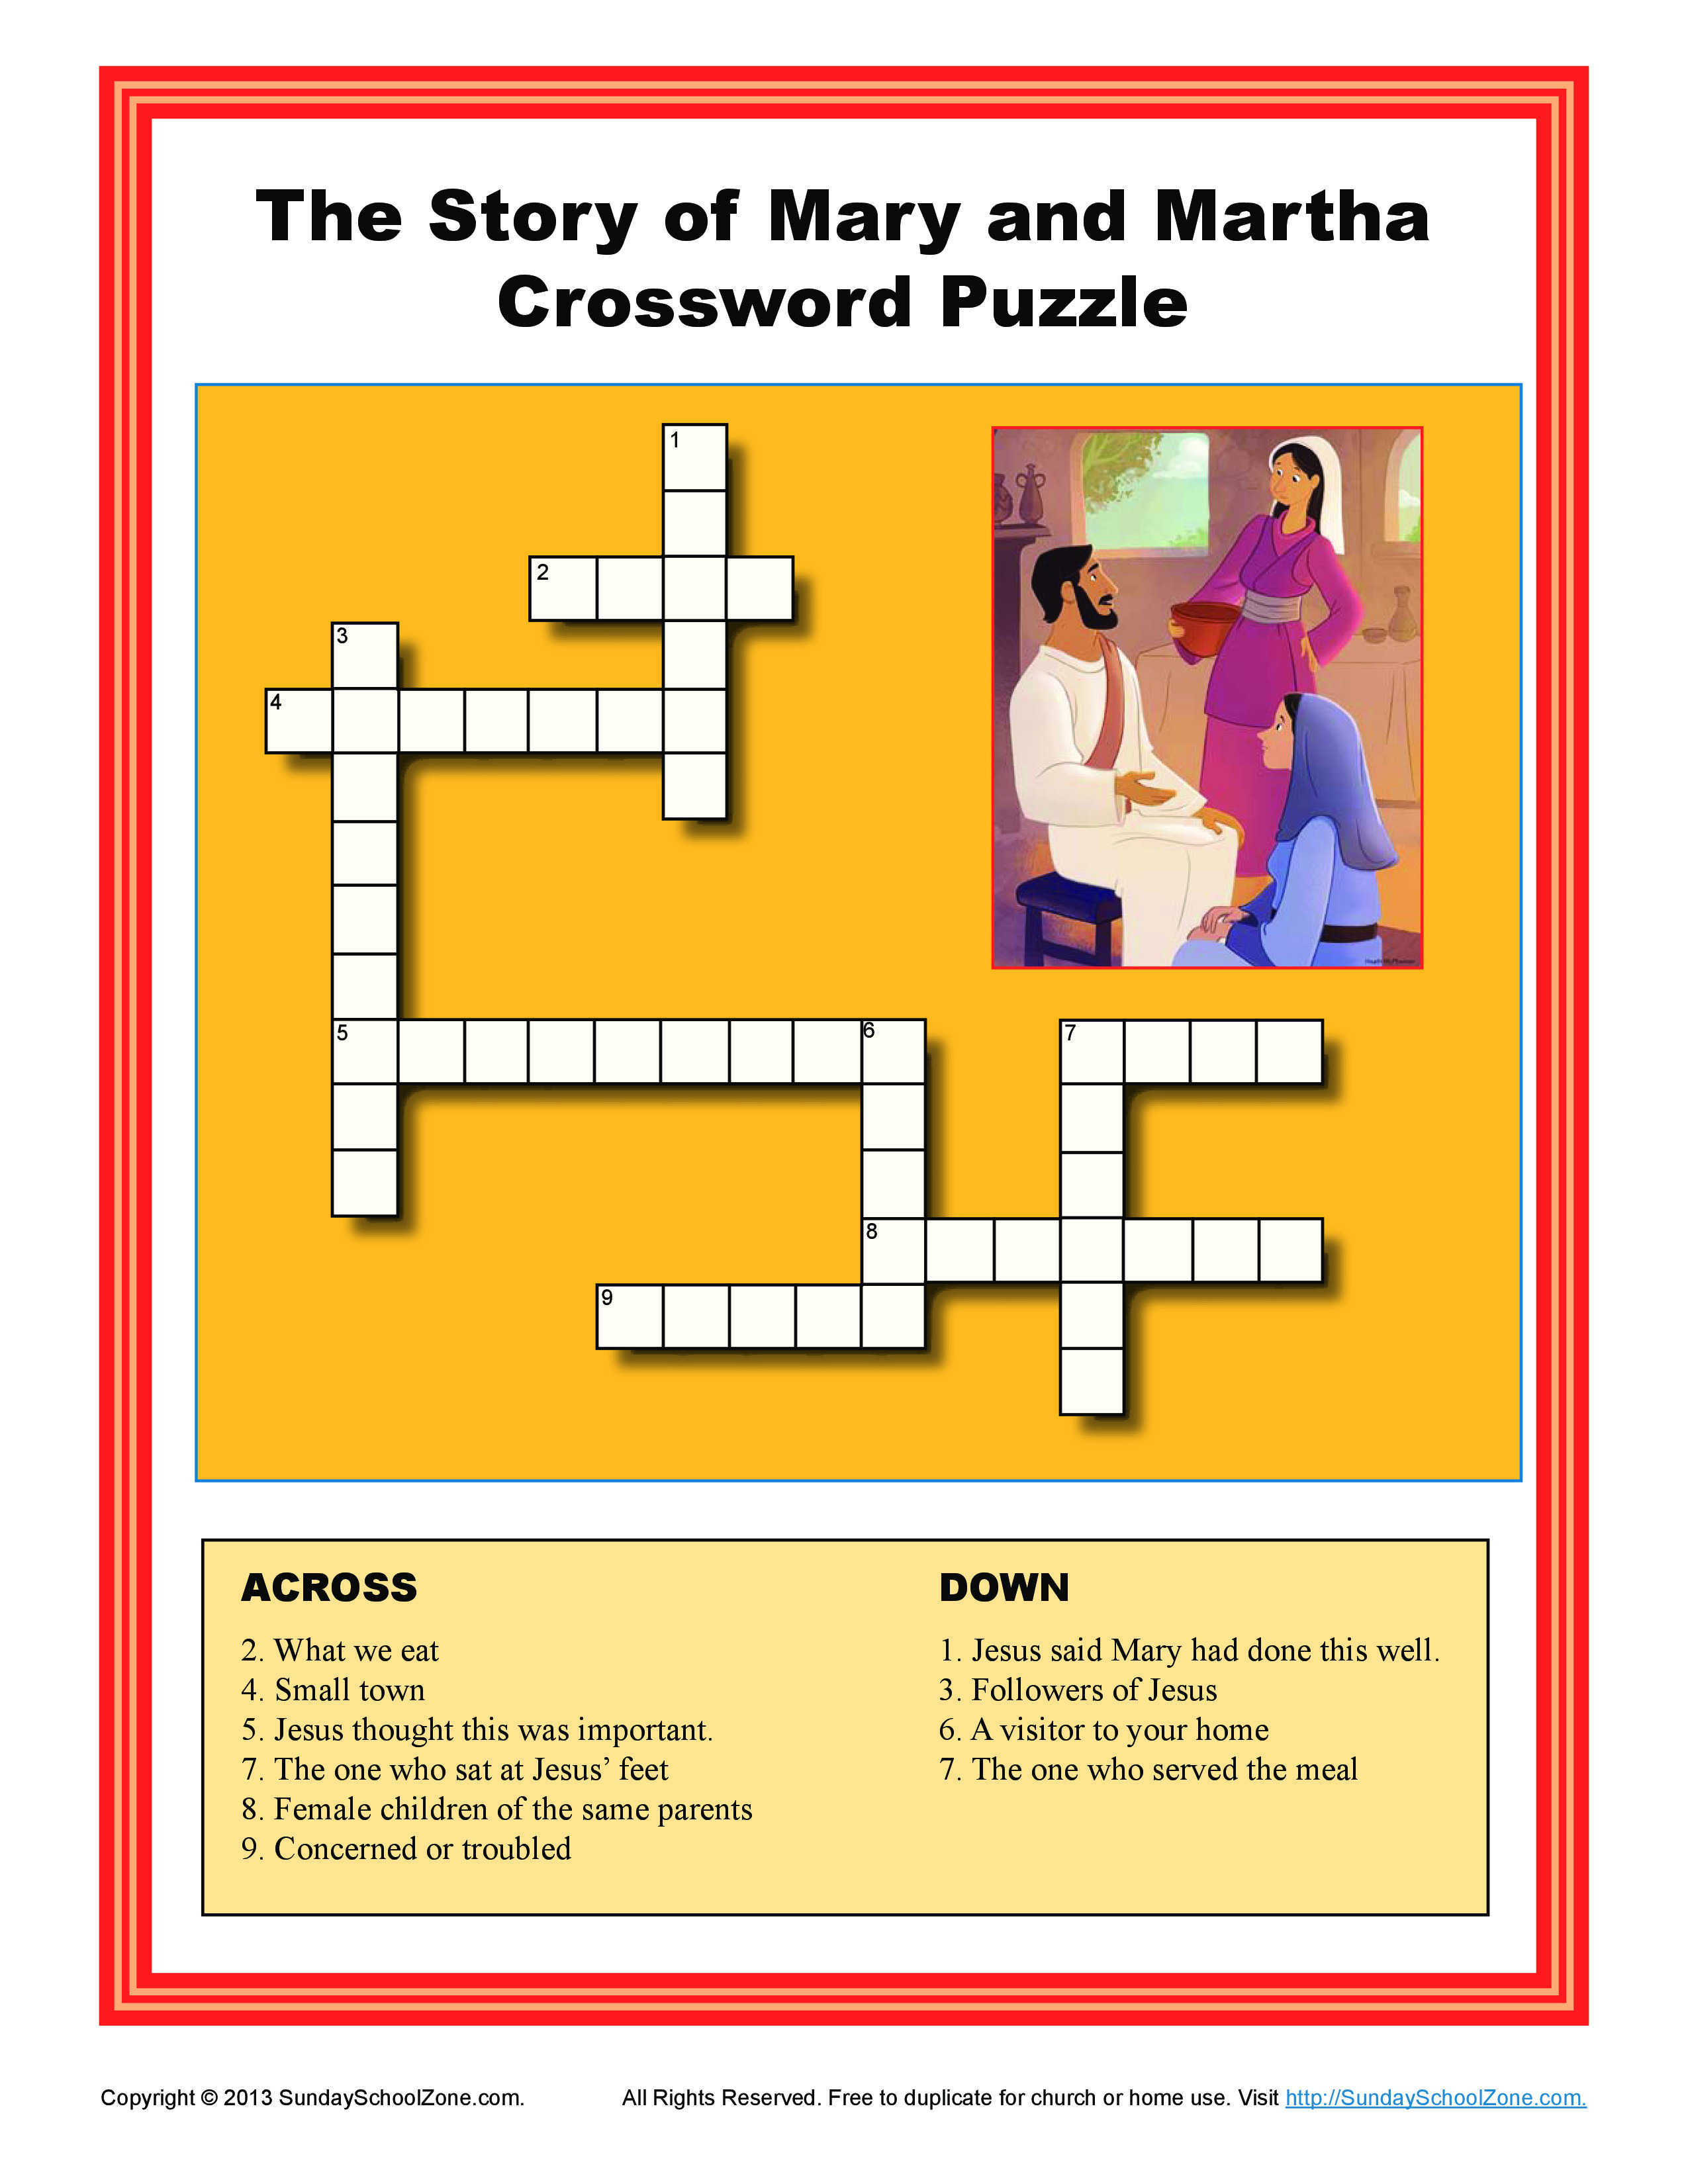 Mary and martha crossword puzzle bible activities for children